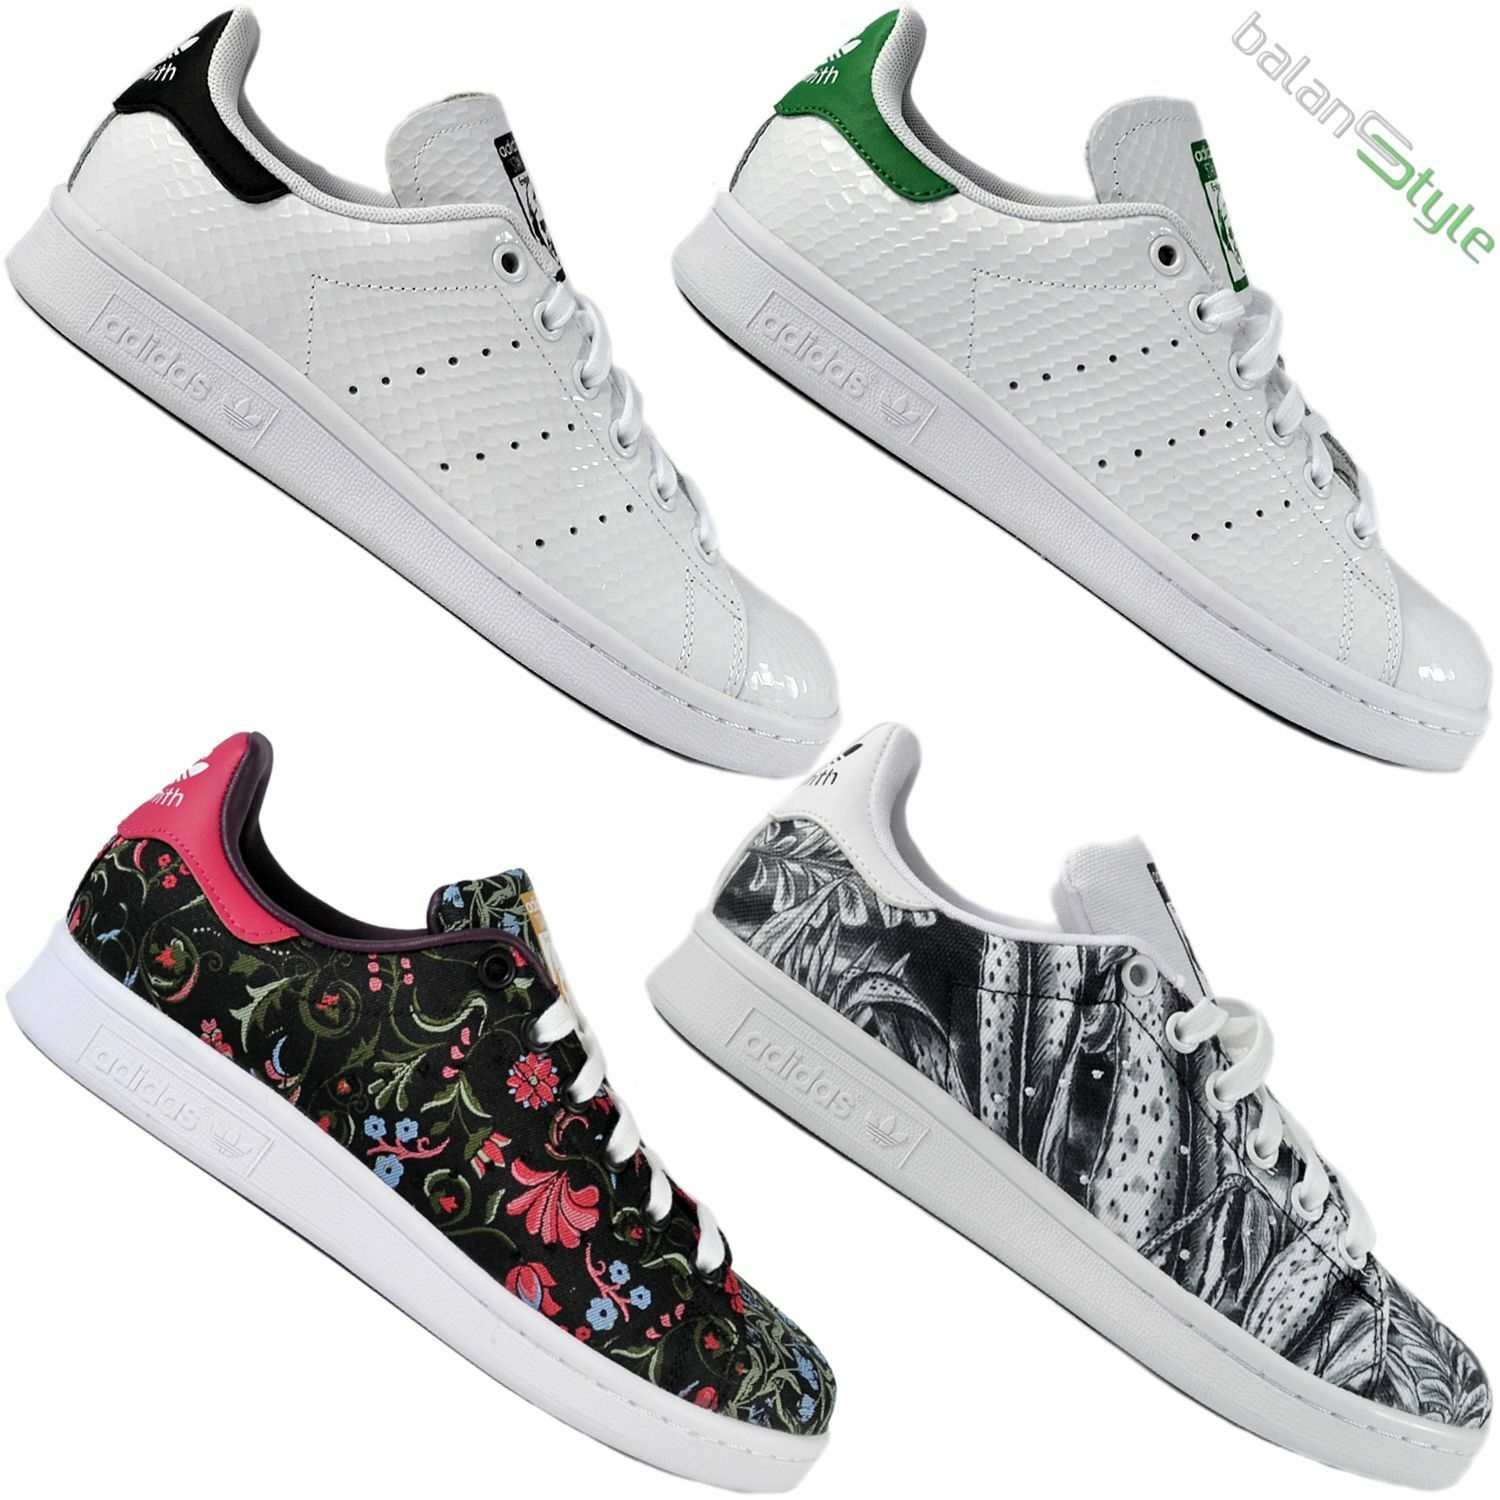 NUOVO Adidas Originals Stan Smith Y M20604 5 - DONNA UOMO Ortholite Taglia 36 -40